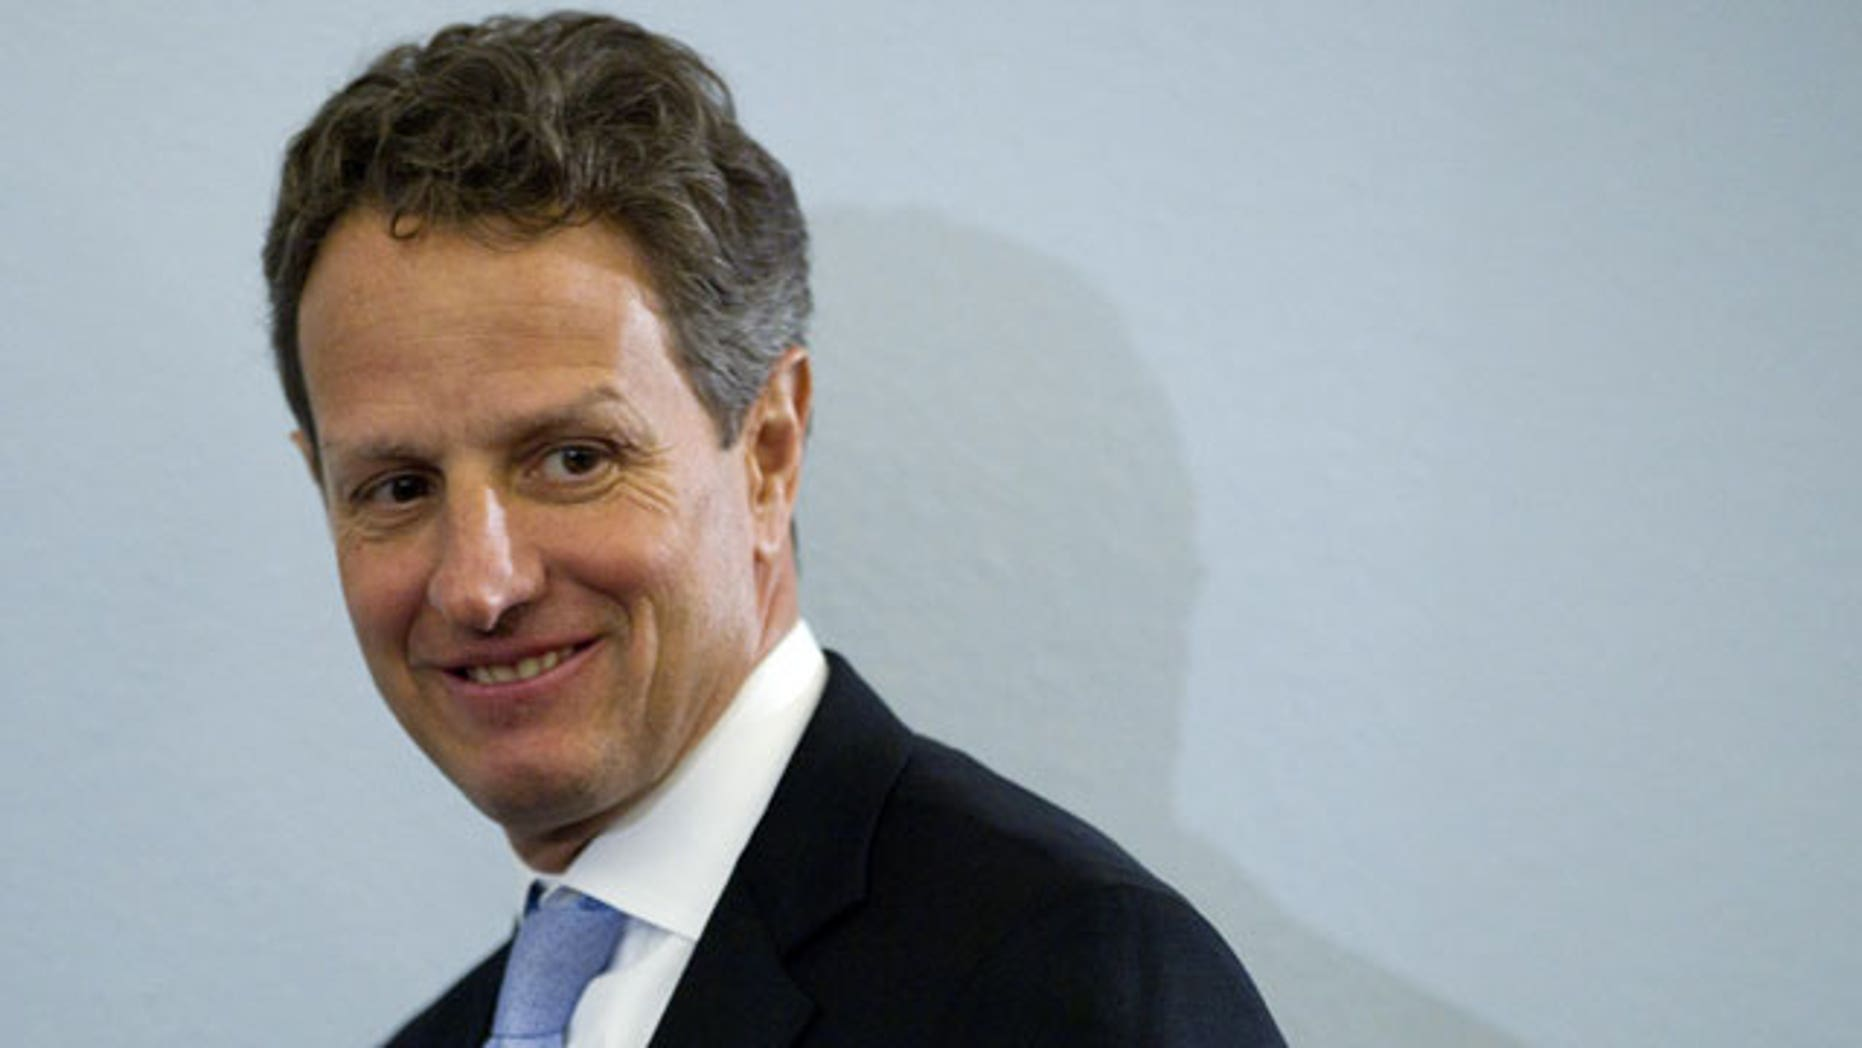 Feb. 16, 2012: Treasury Secretary Timothy Geithner arrives on Capitol Hill in Washington to testify before the House Budget Committee hearing on President Barack Obama's fiscal 2013 federal budget.